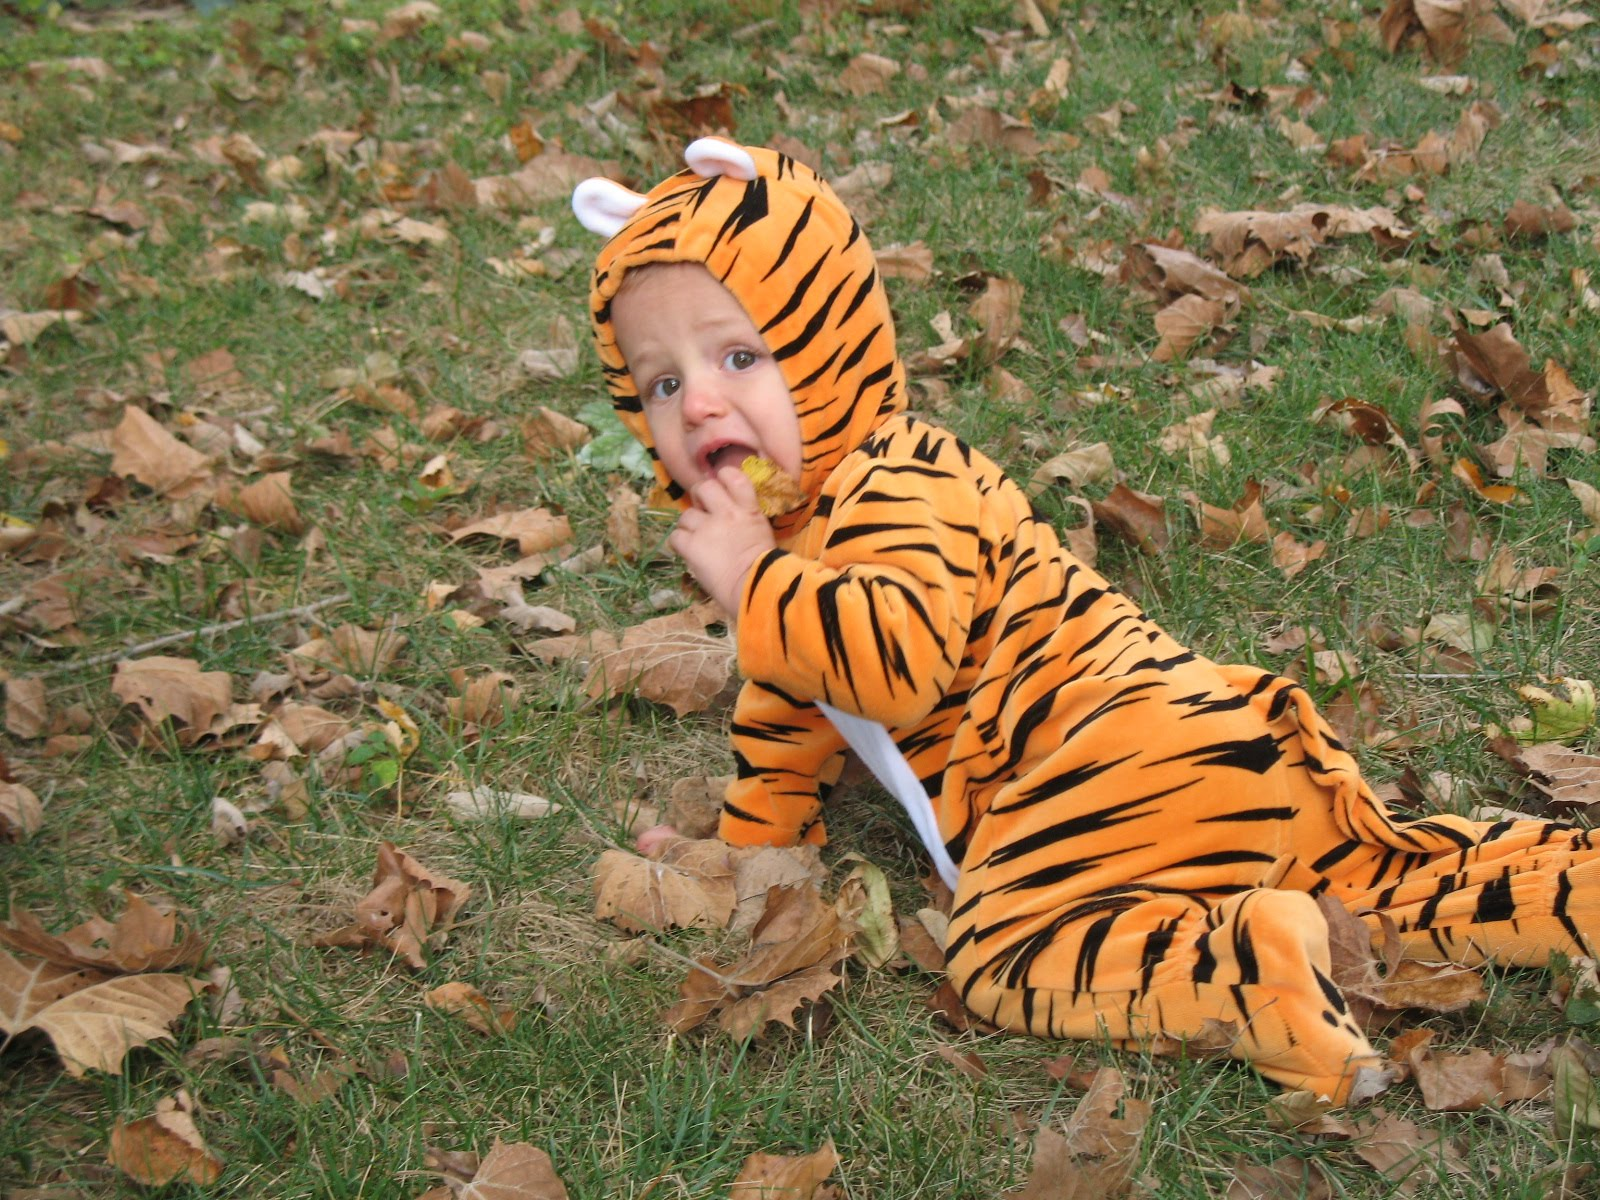 Lions and tigers and bears 019 jpg